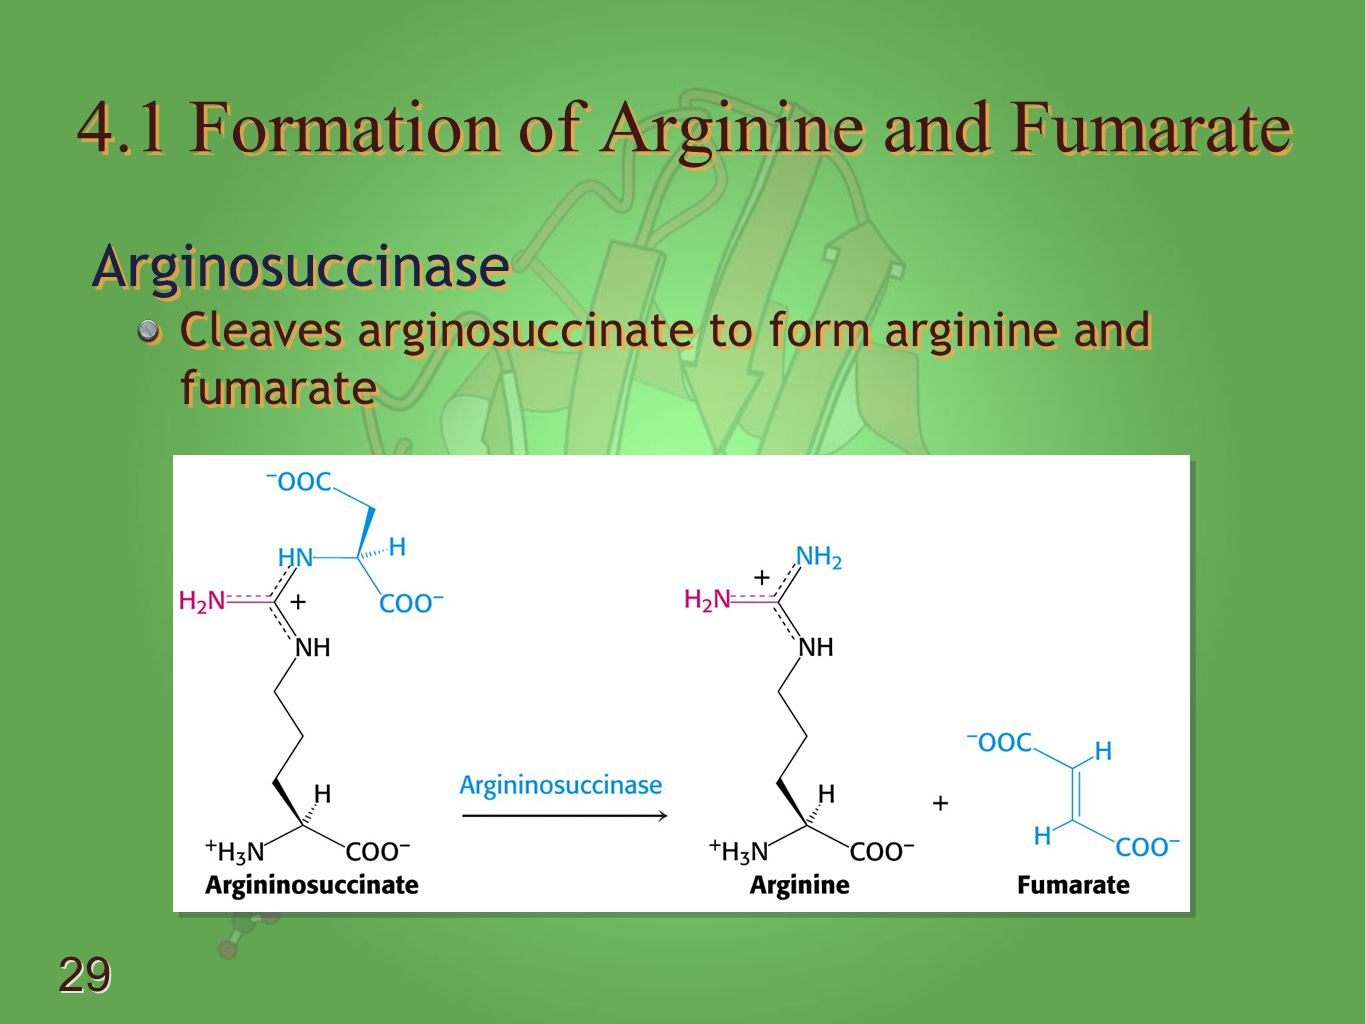 4.1 Formation of Arginine and Fumarate